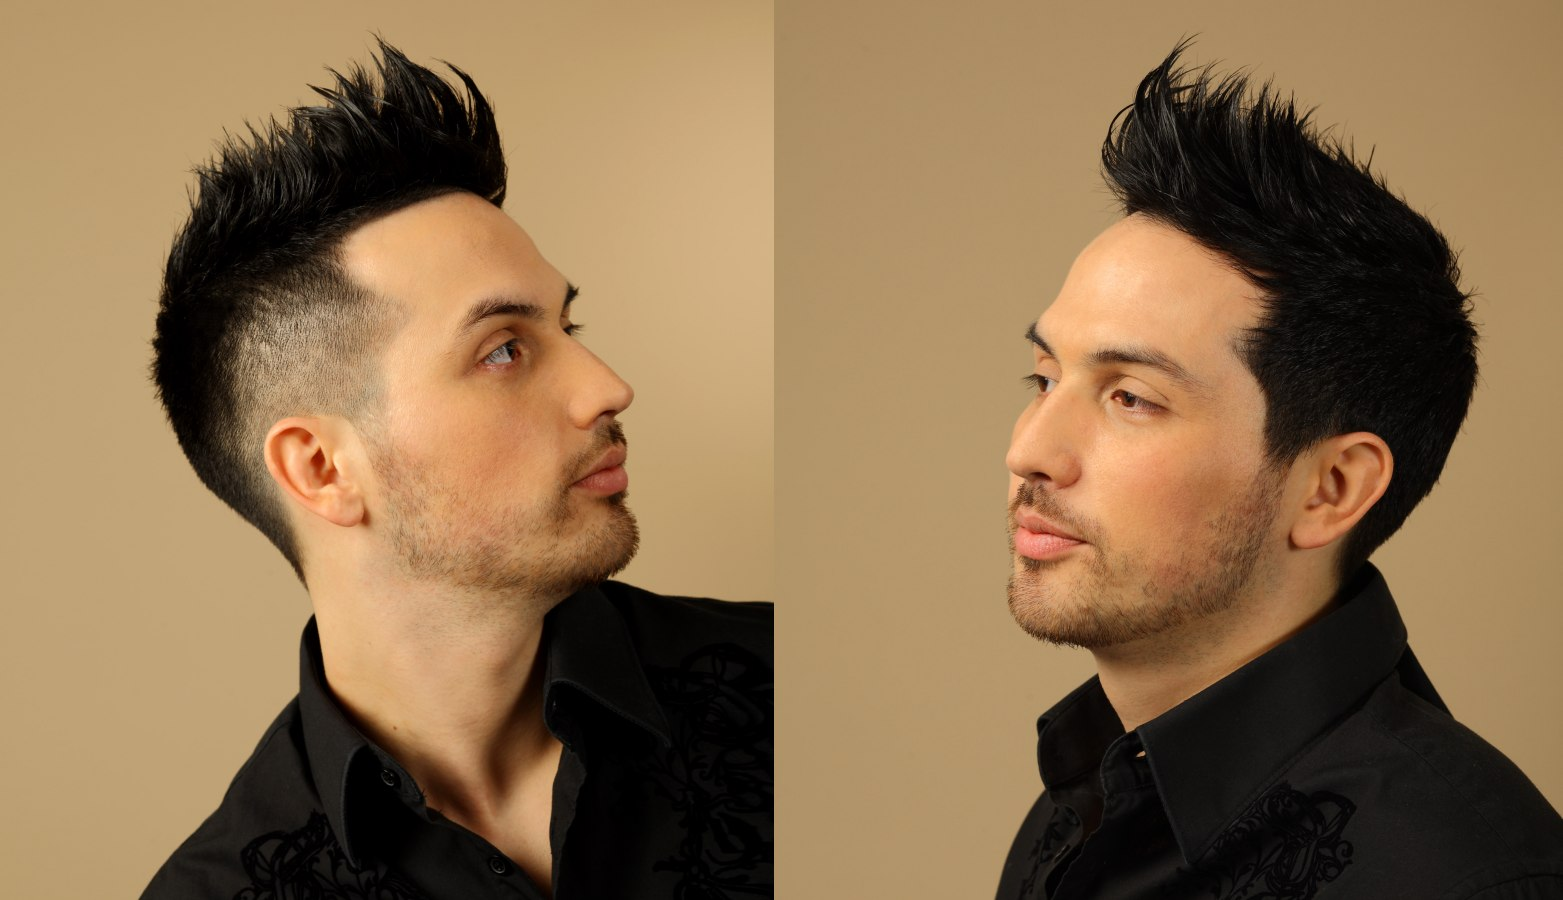 mohawk hairstyle with buzzed sides and buzz cut neckline